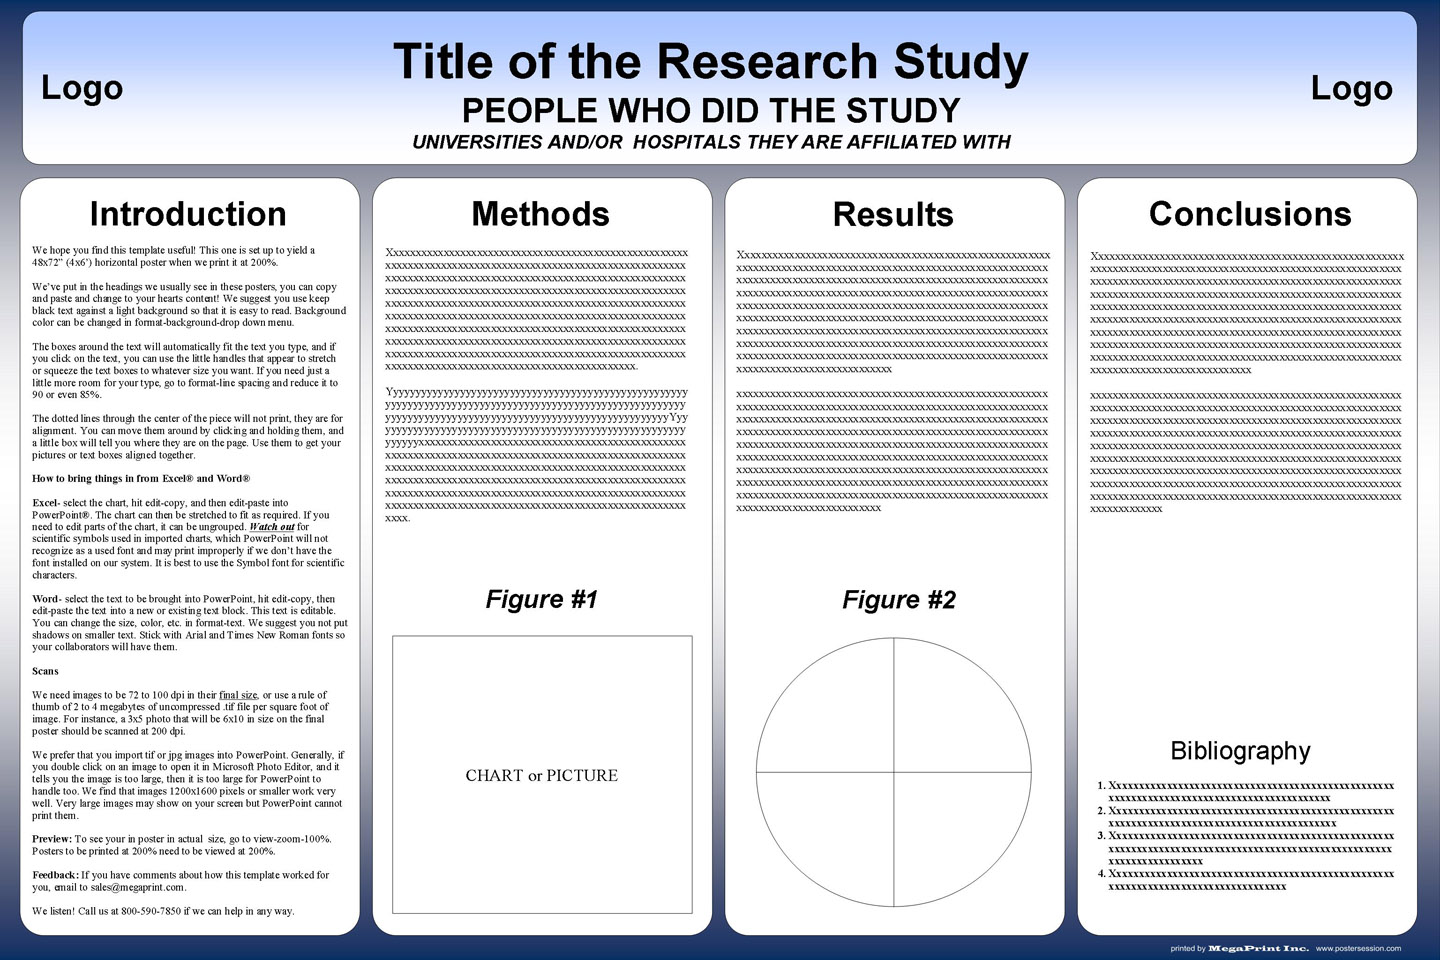 Free Powerpoint Scientific Research Poster Templates for Printing u4KG1Cy0